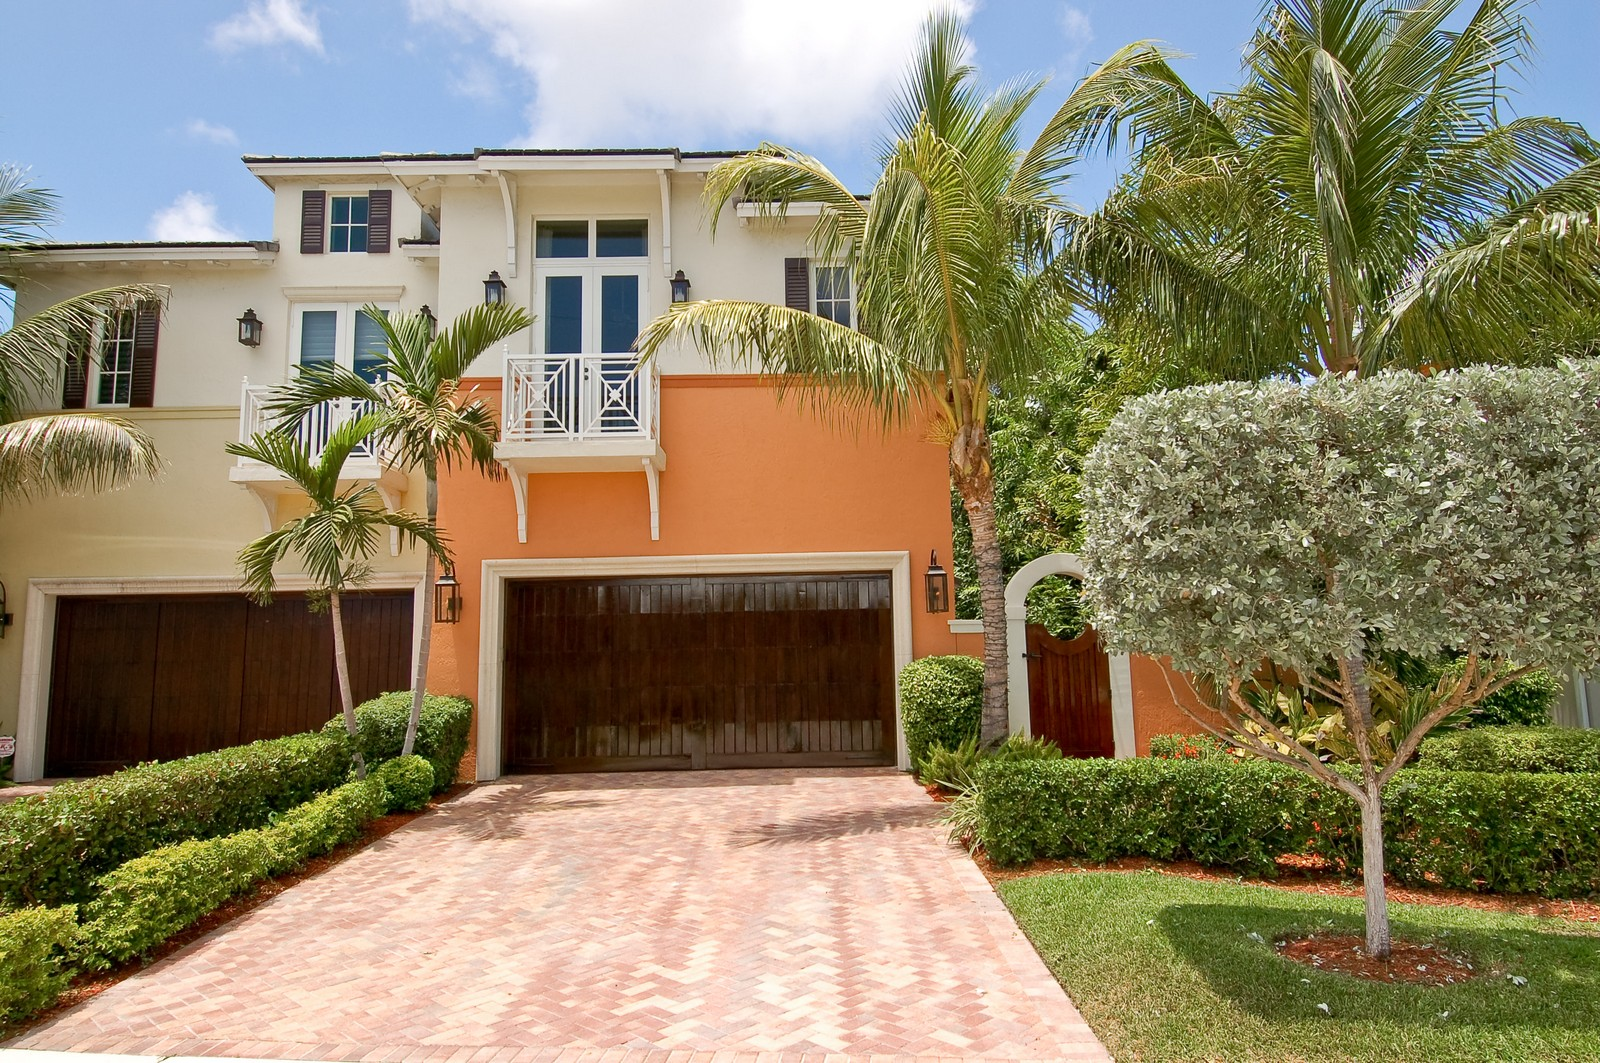 Real Estate Photography - 114 Venetian Dr, Delray Beach, FL, 33483 - Front View